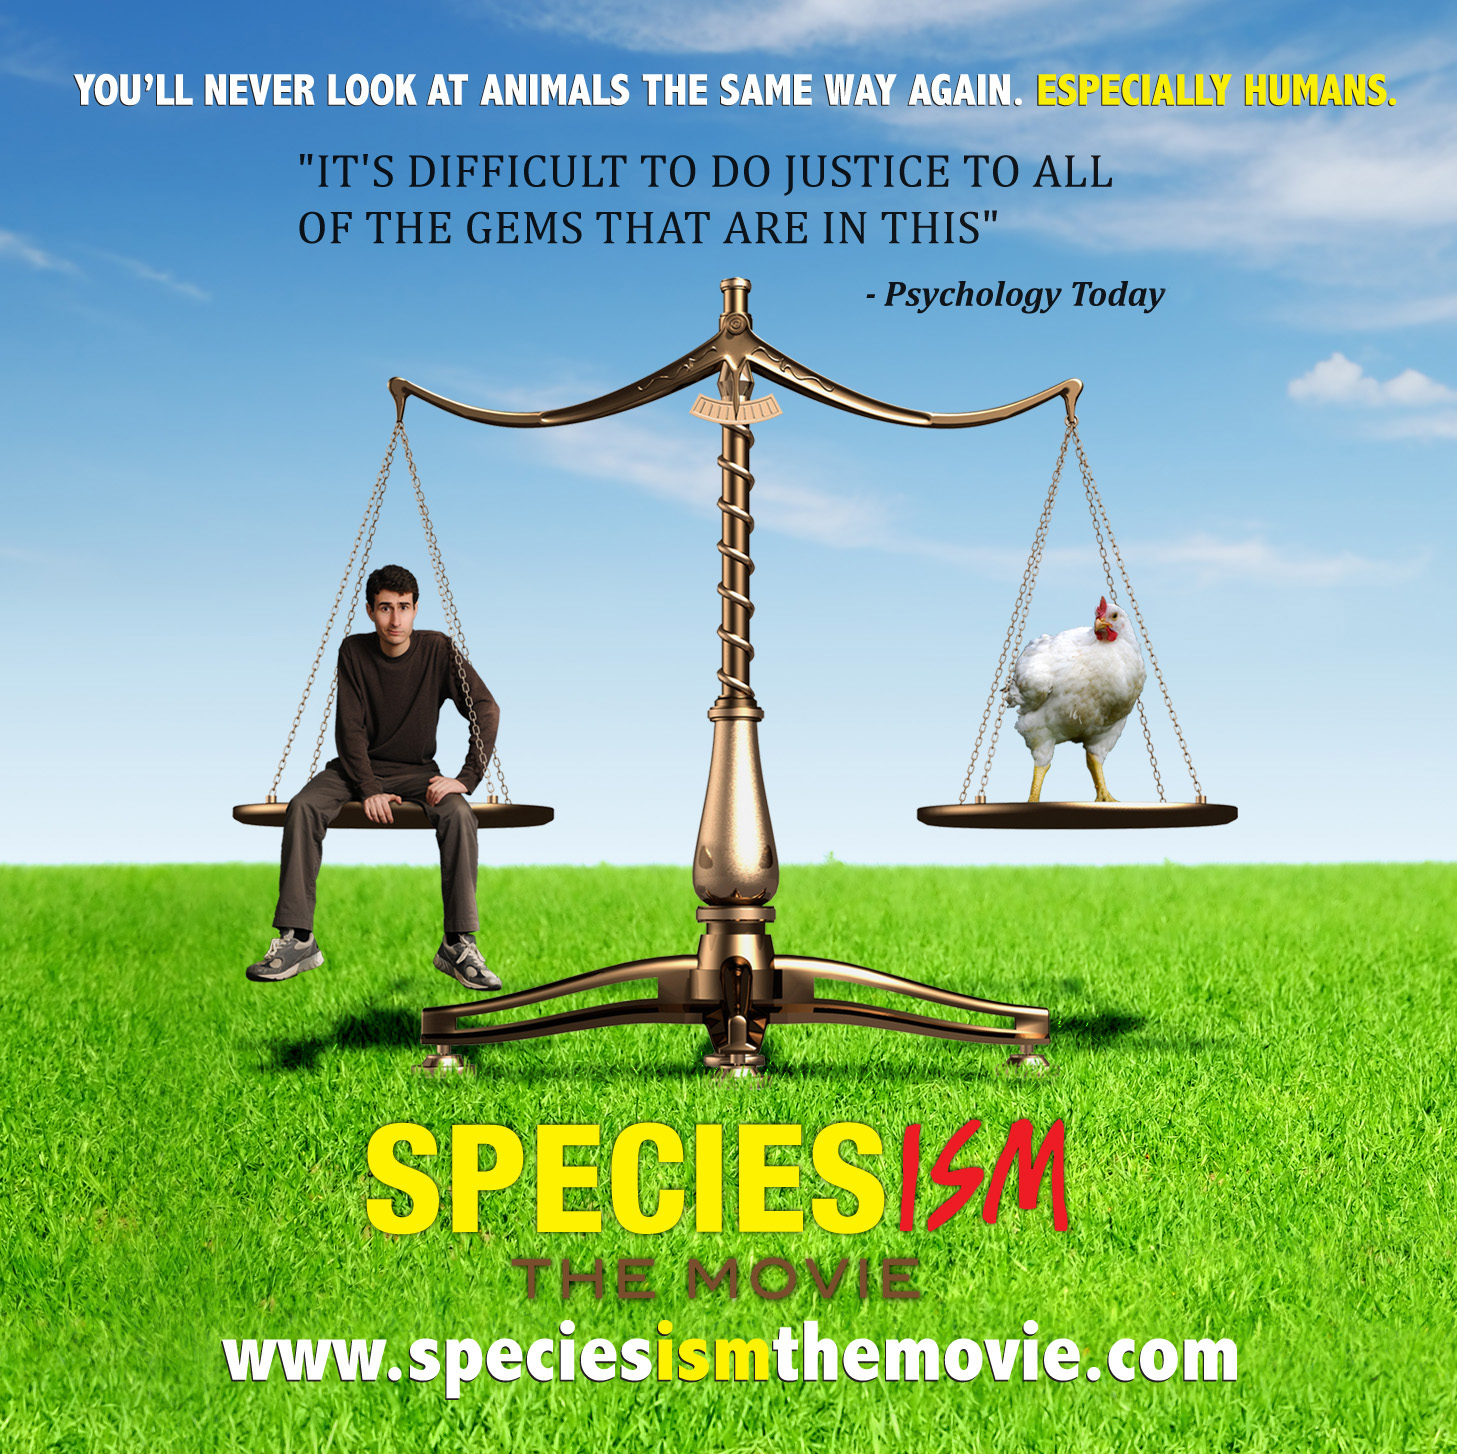 Speciesism the Movie (DVD)